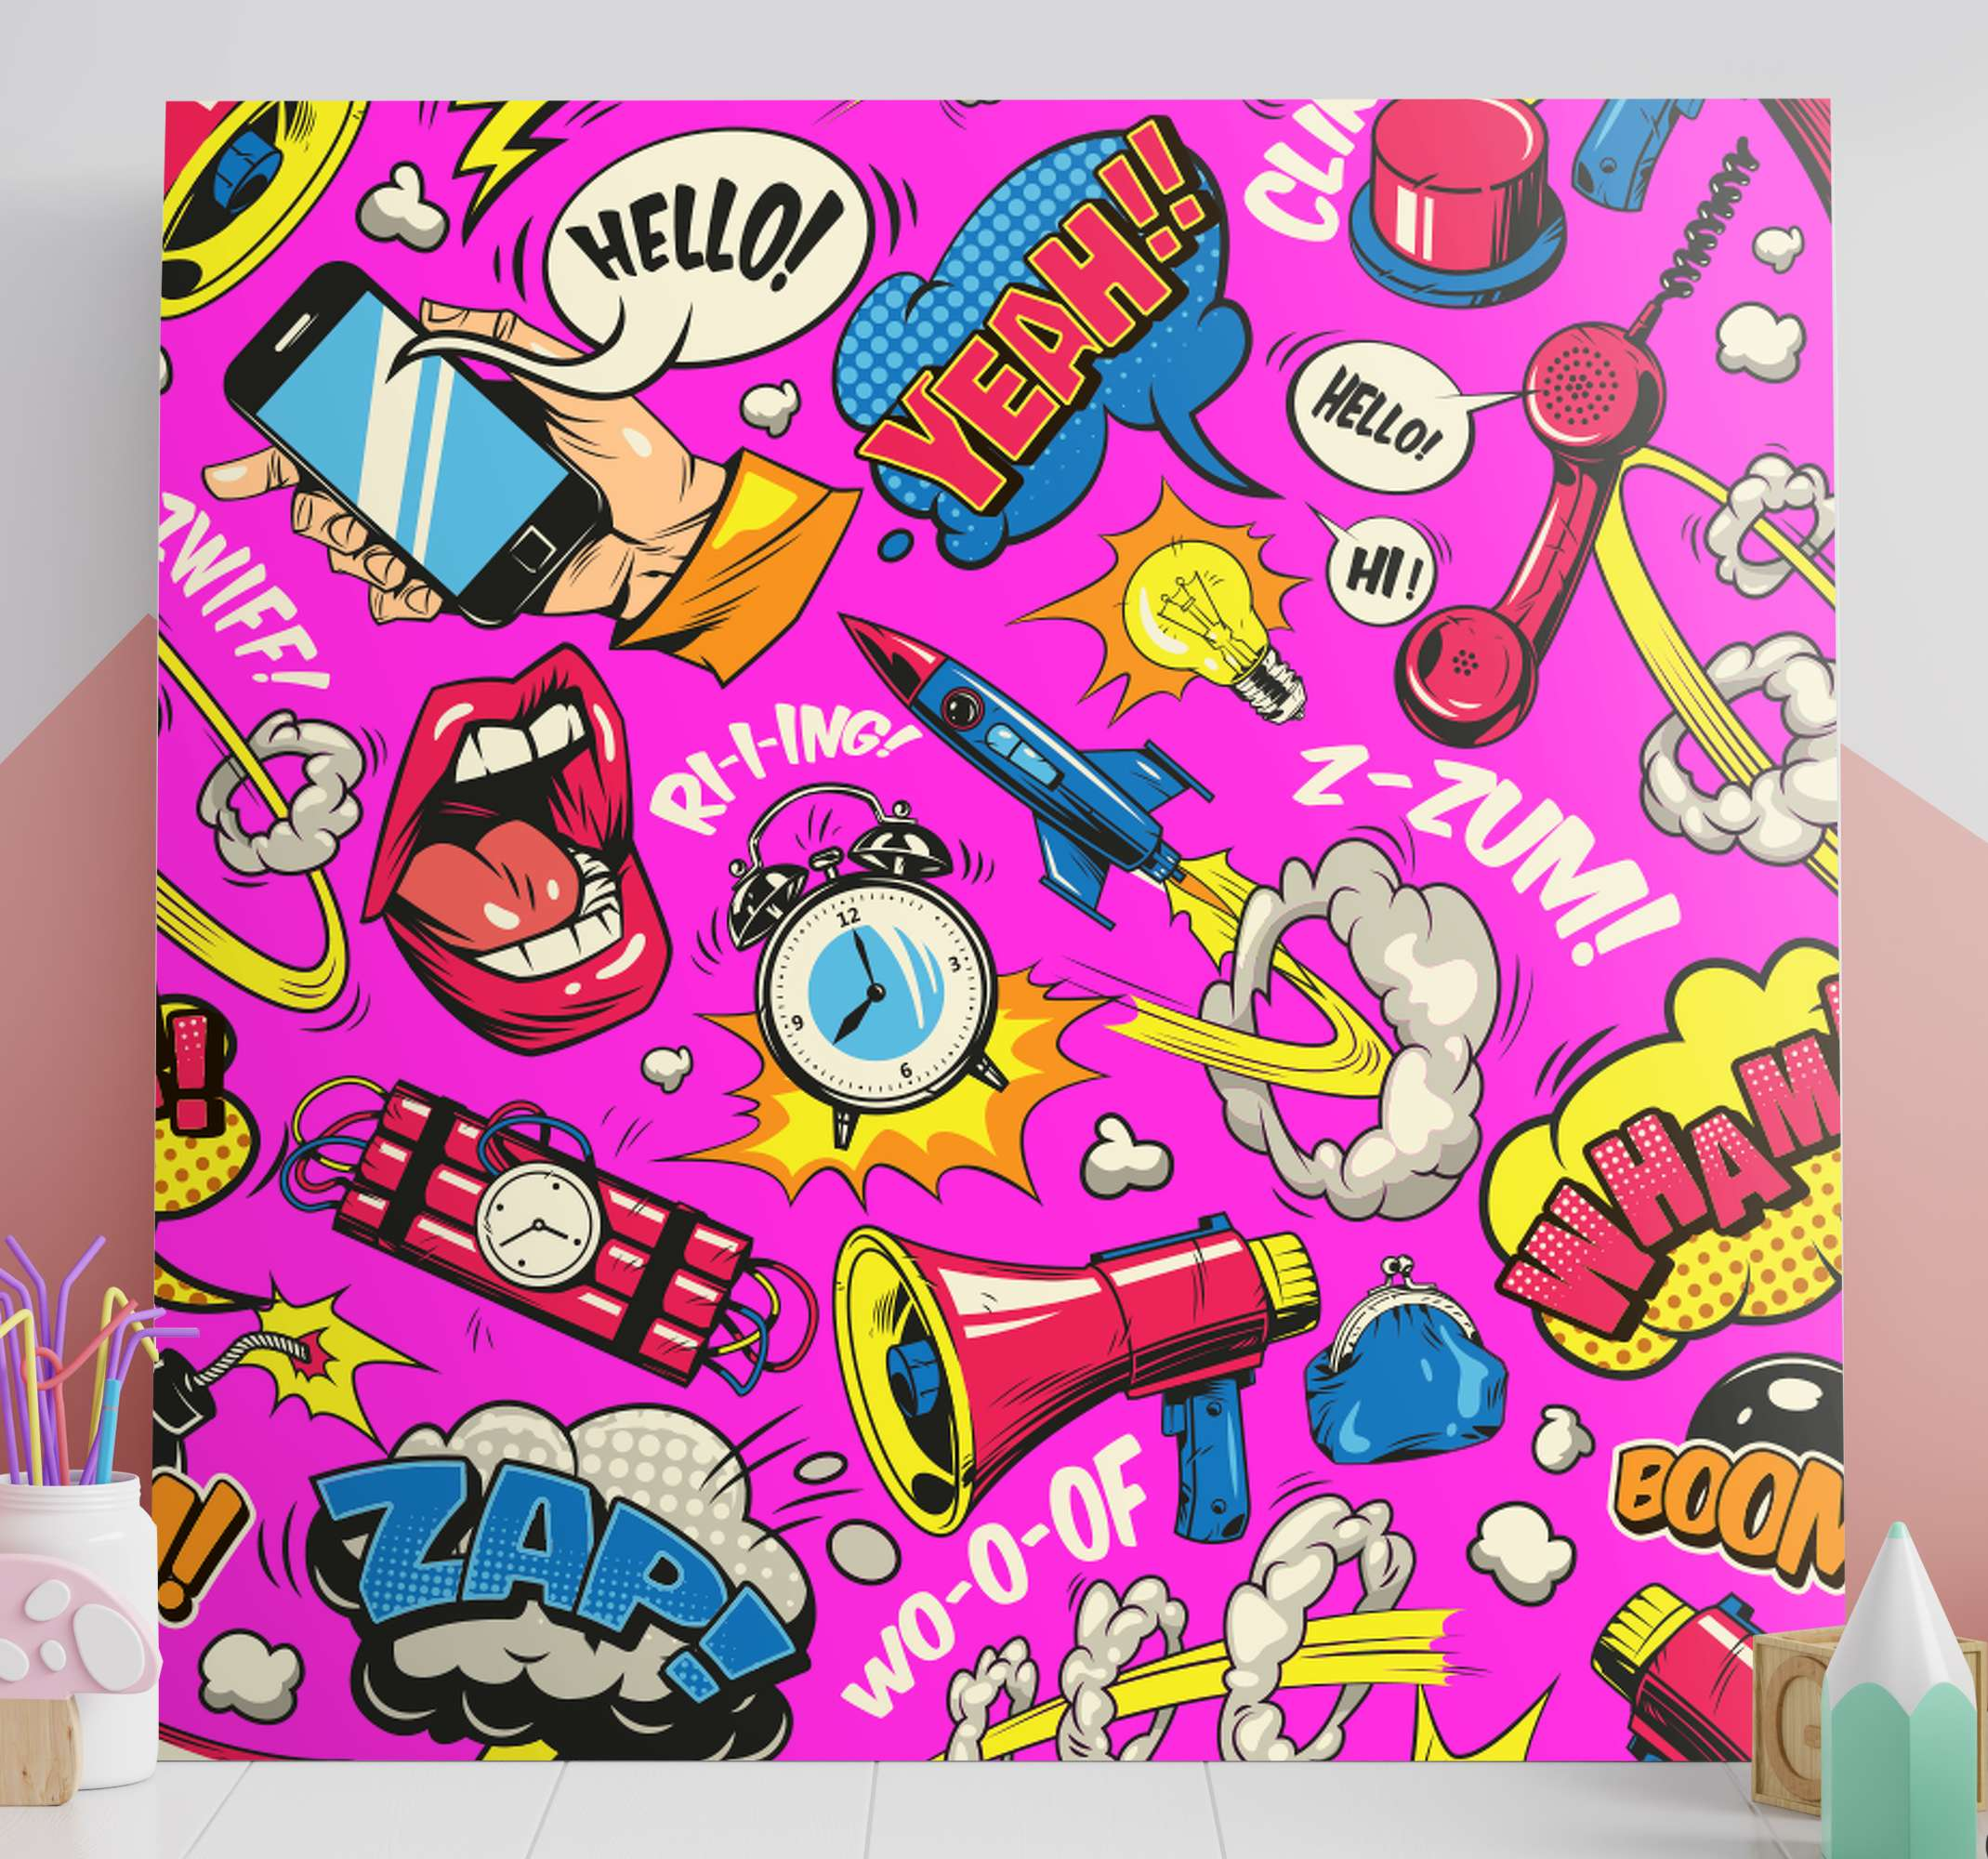 TenStickers. Bright Cartoon canvas art. Original canvas design which features a variety of classic cartoon imagery including lips, speech bubbles and dynamite. High quality.